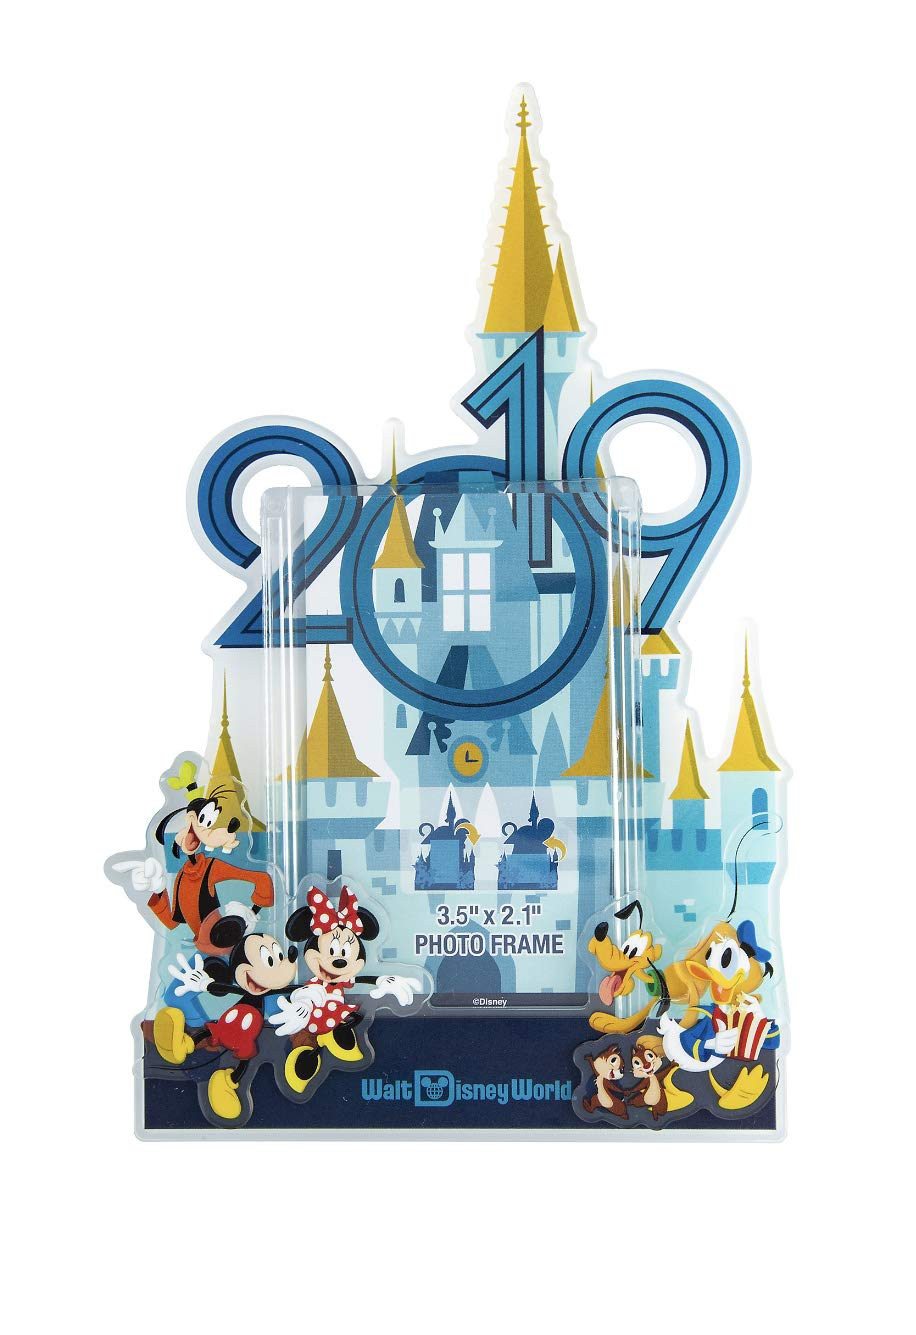 Walt Disney World 2019 Mickey Mouse Magnetic Photo Frame with Stand by Disney Parks